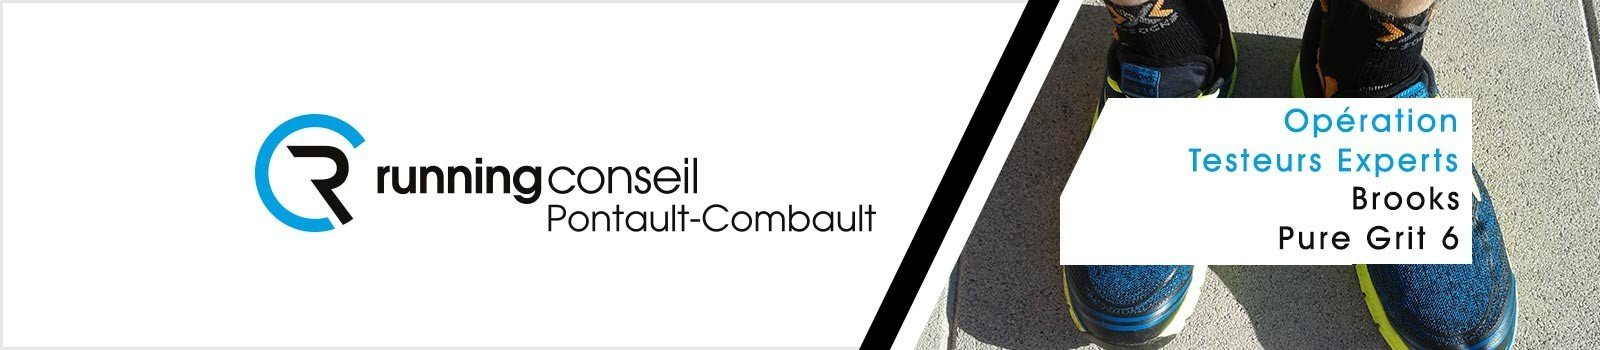 Testeurs Experts Brooks Running Conseil Pontault-Combault